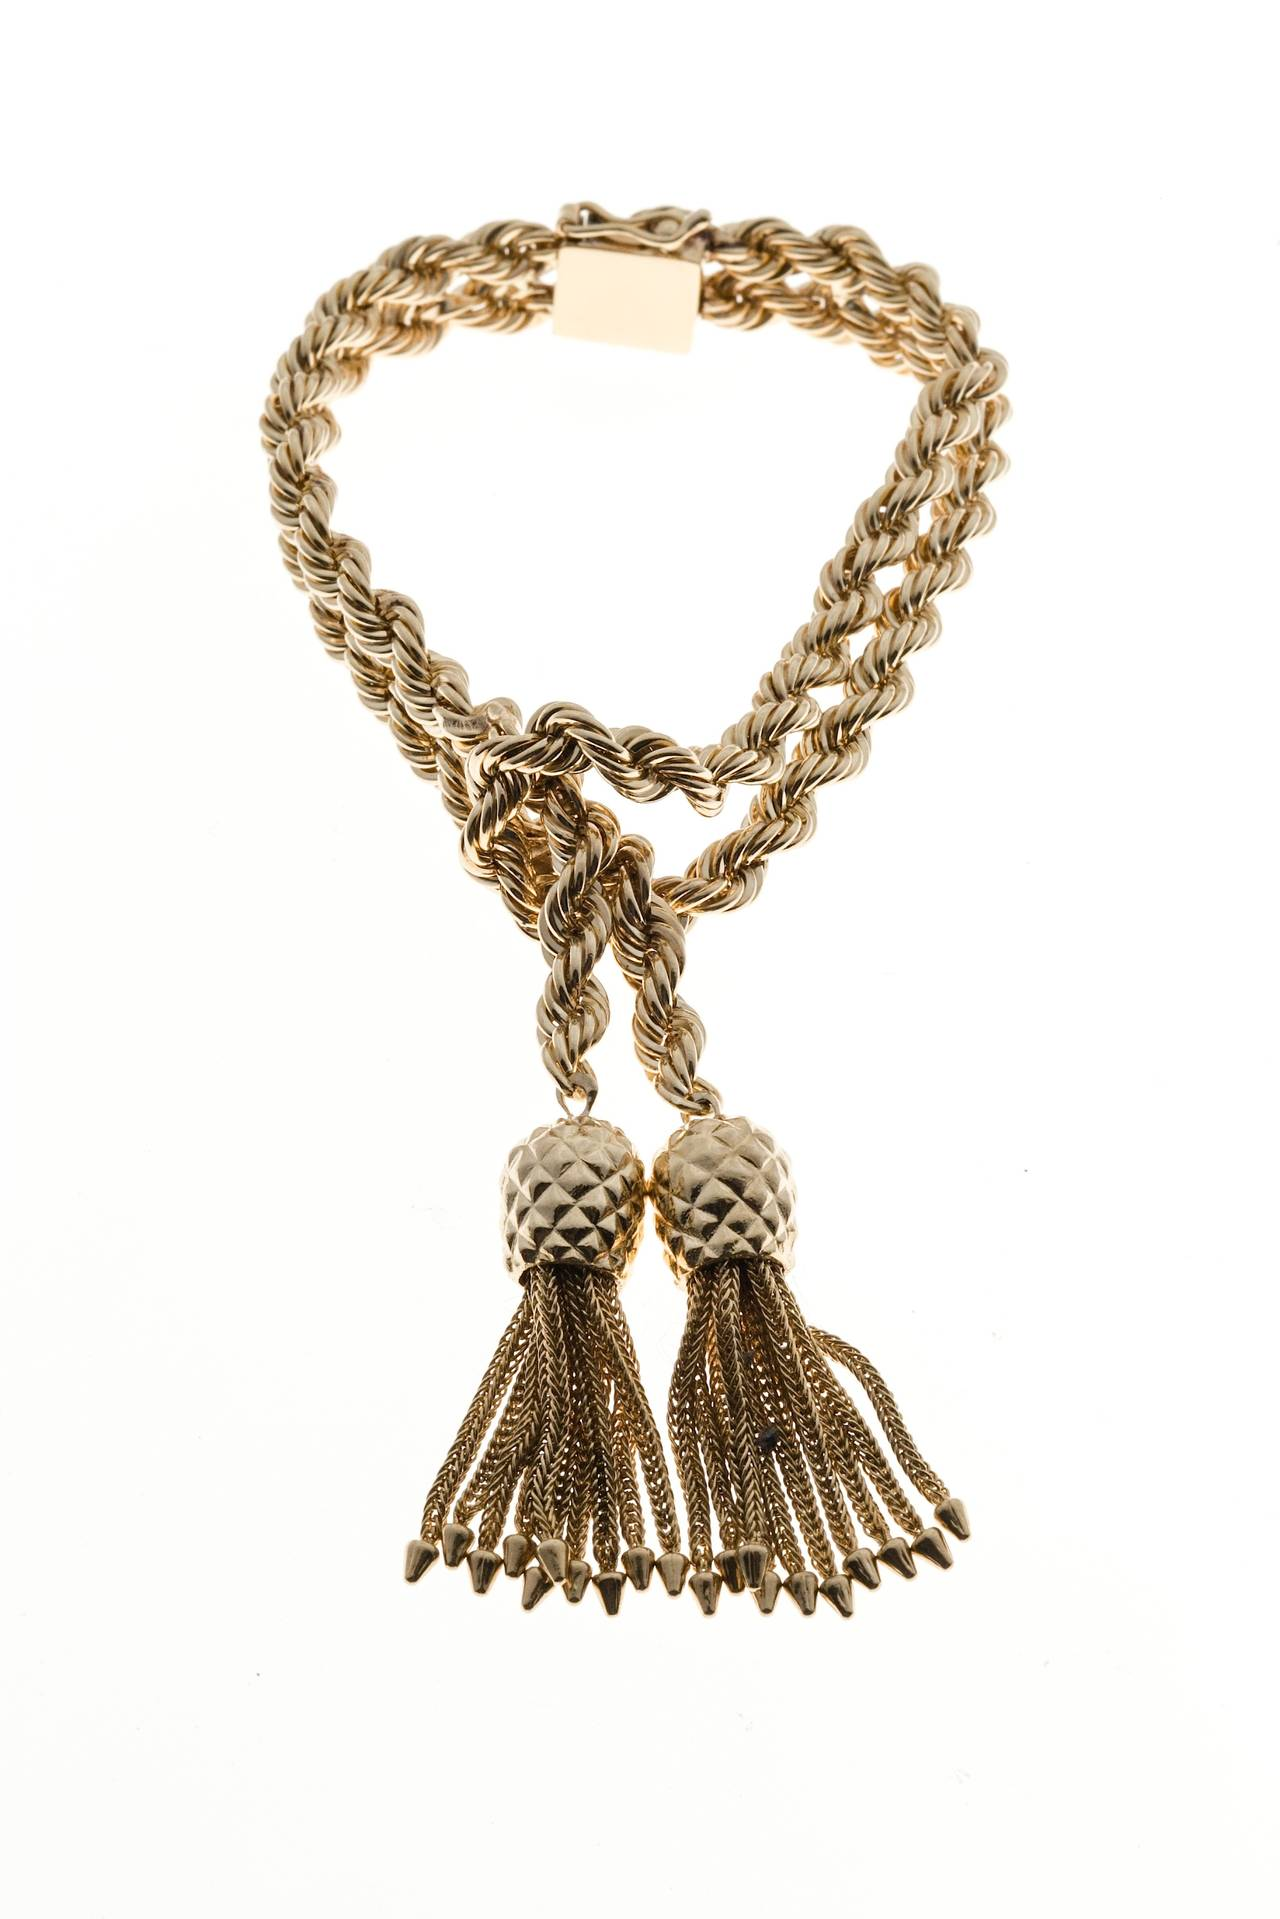 Tiffany & Co. Rope Knot Tassel Gold Bracelet 5